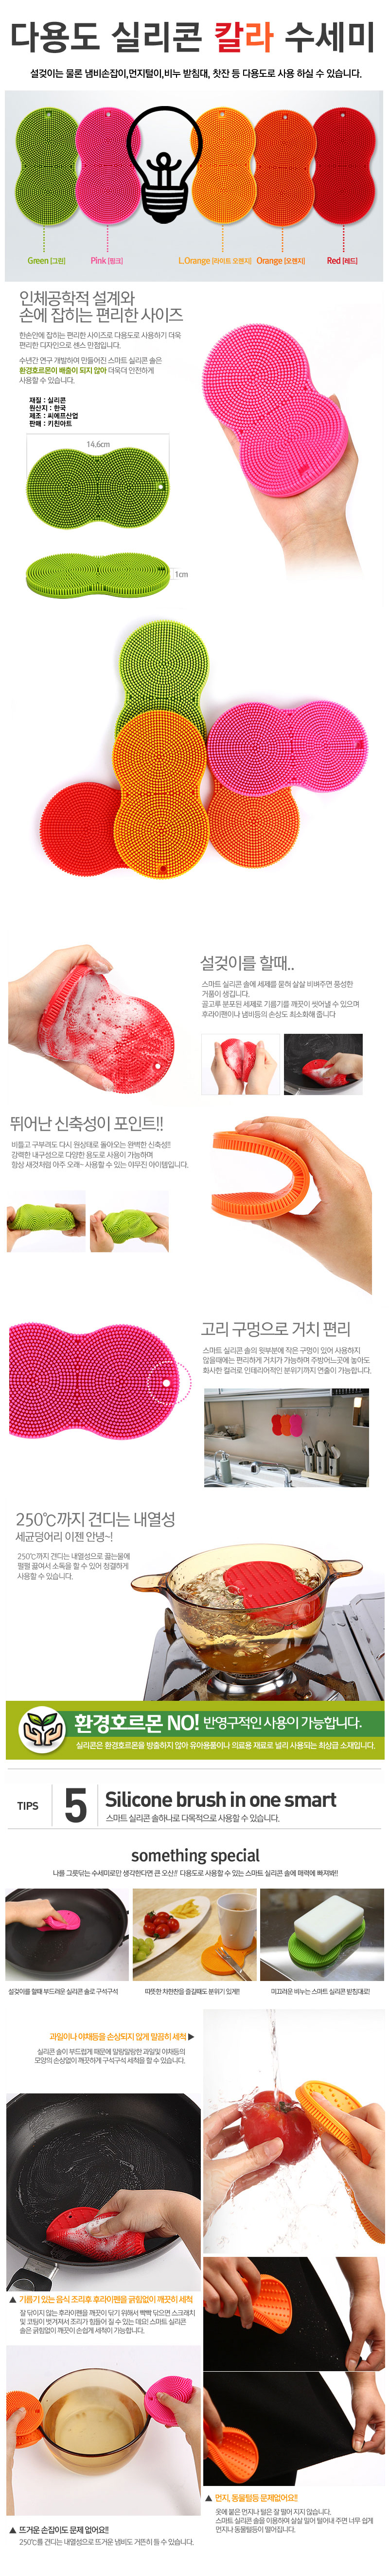 [ KITCHENART ] Fabriqué en Corée, Multi-purpose silicone coloris Loofah (Rouge + Orange) défini